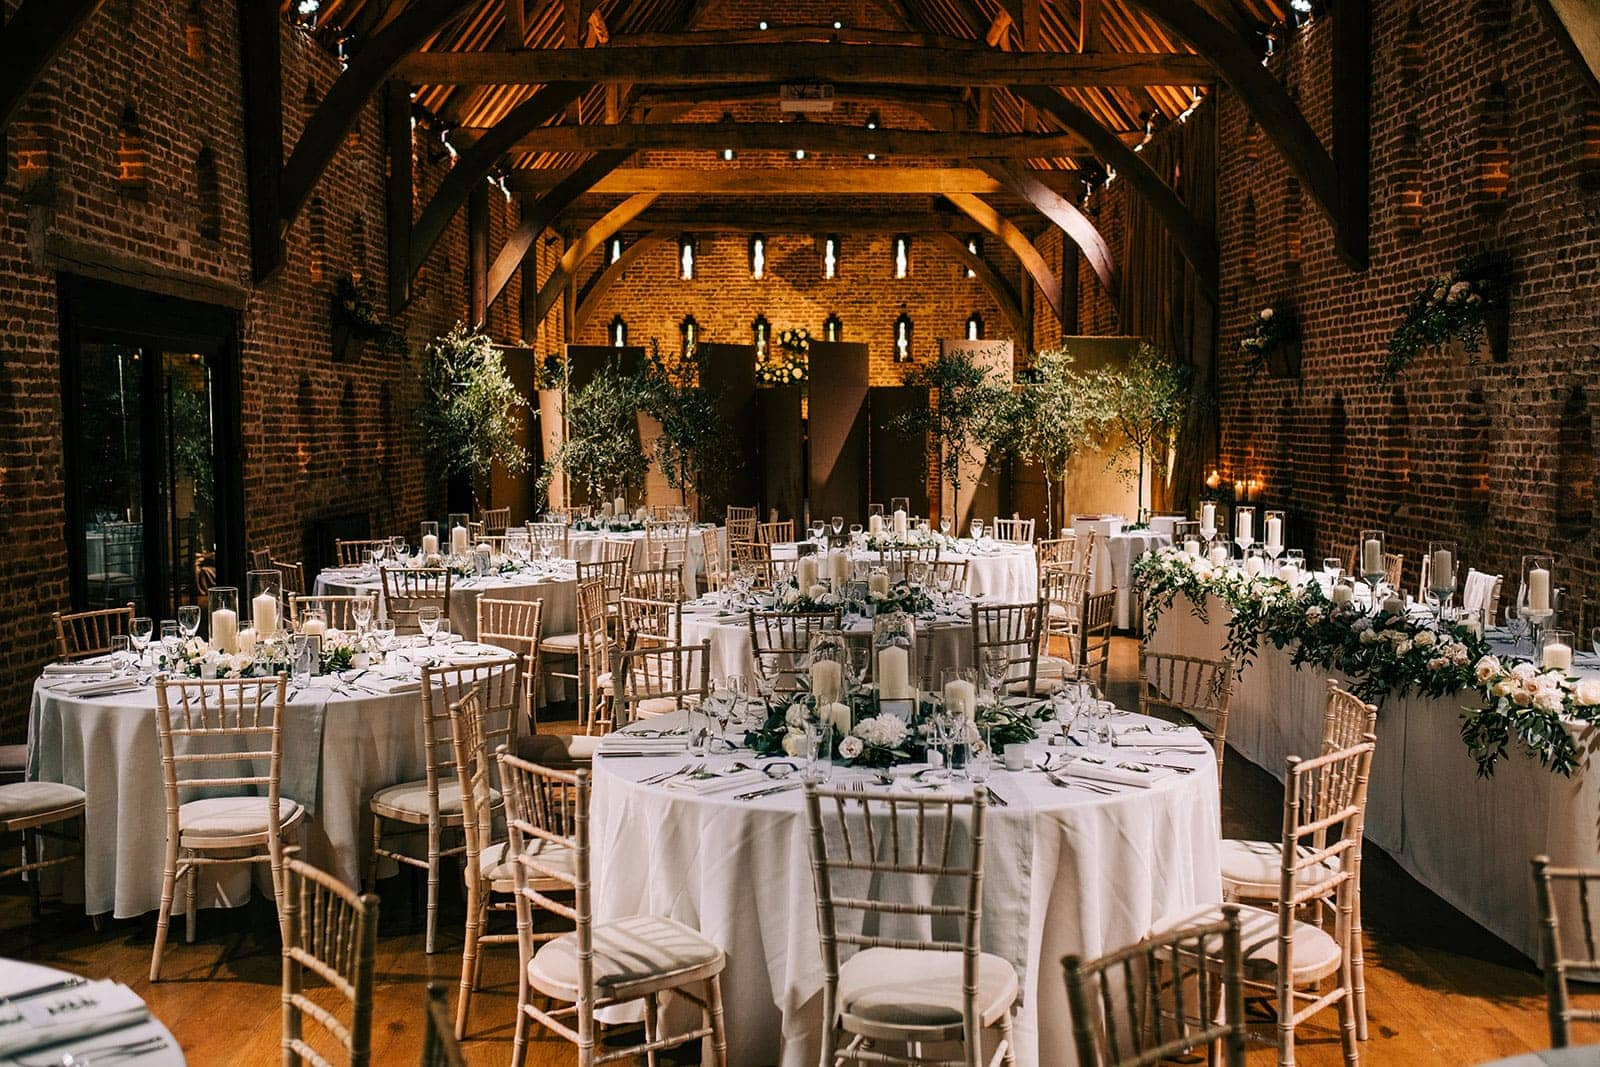 The Great Barn at Hales Hall Norfolk